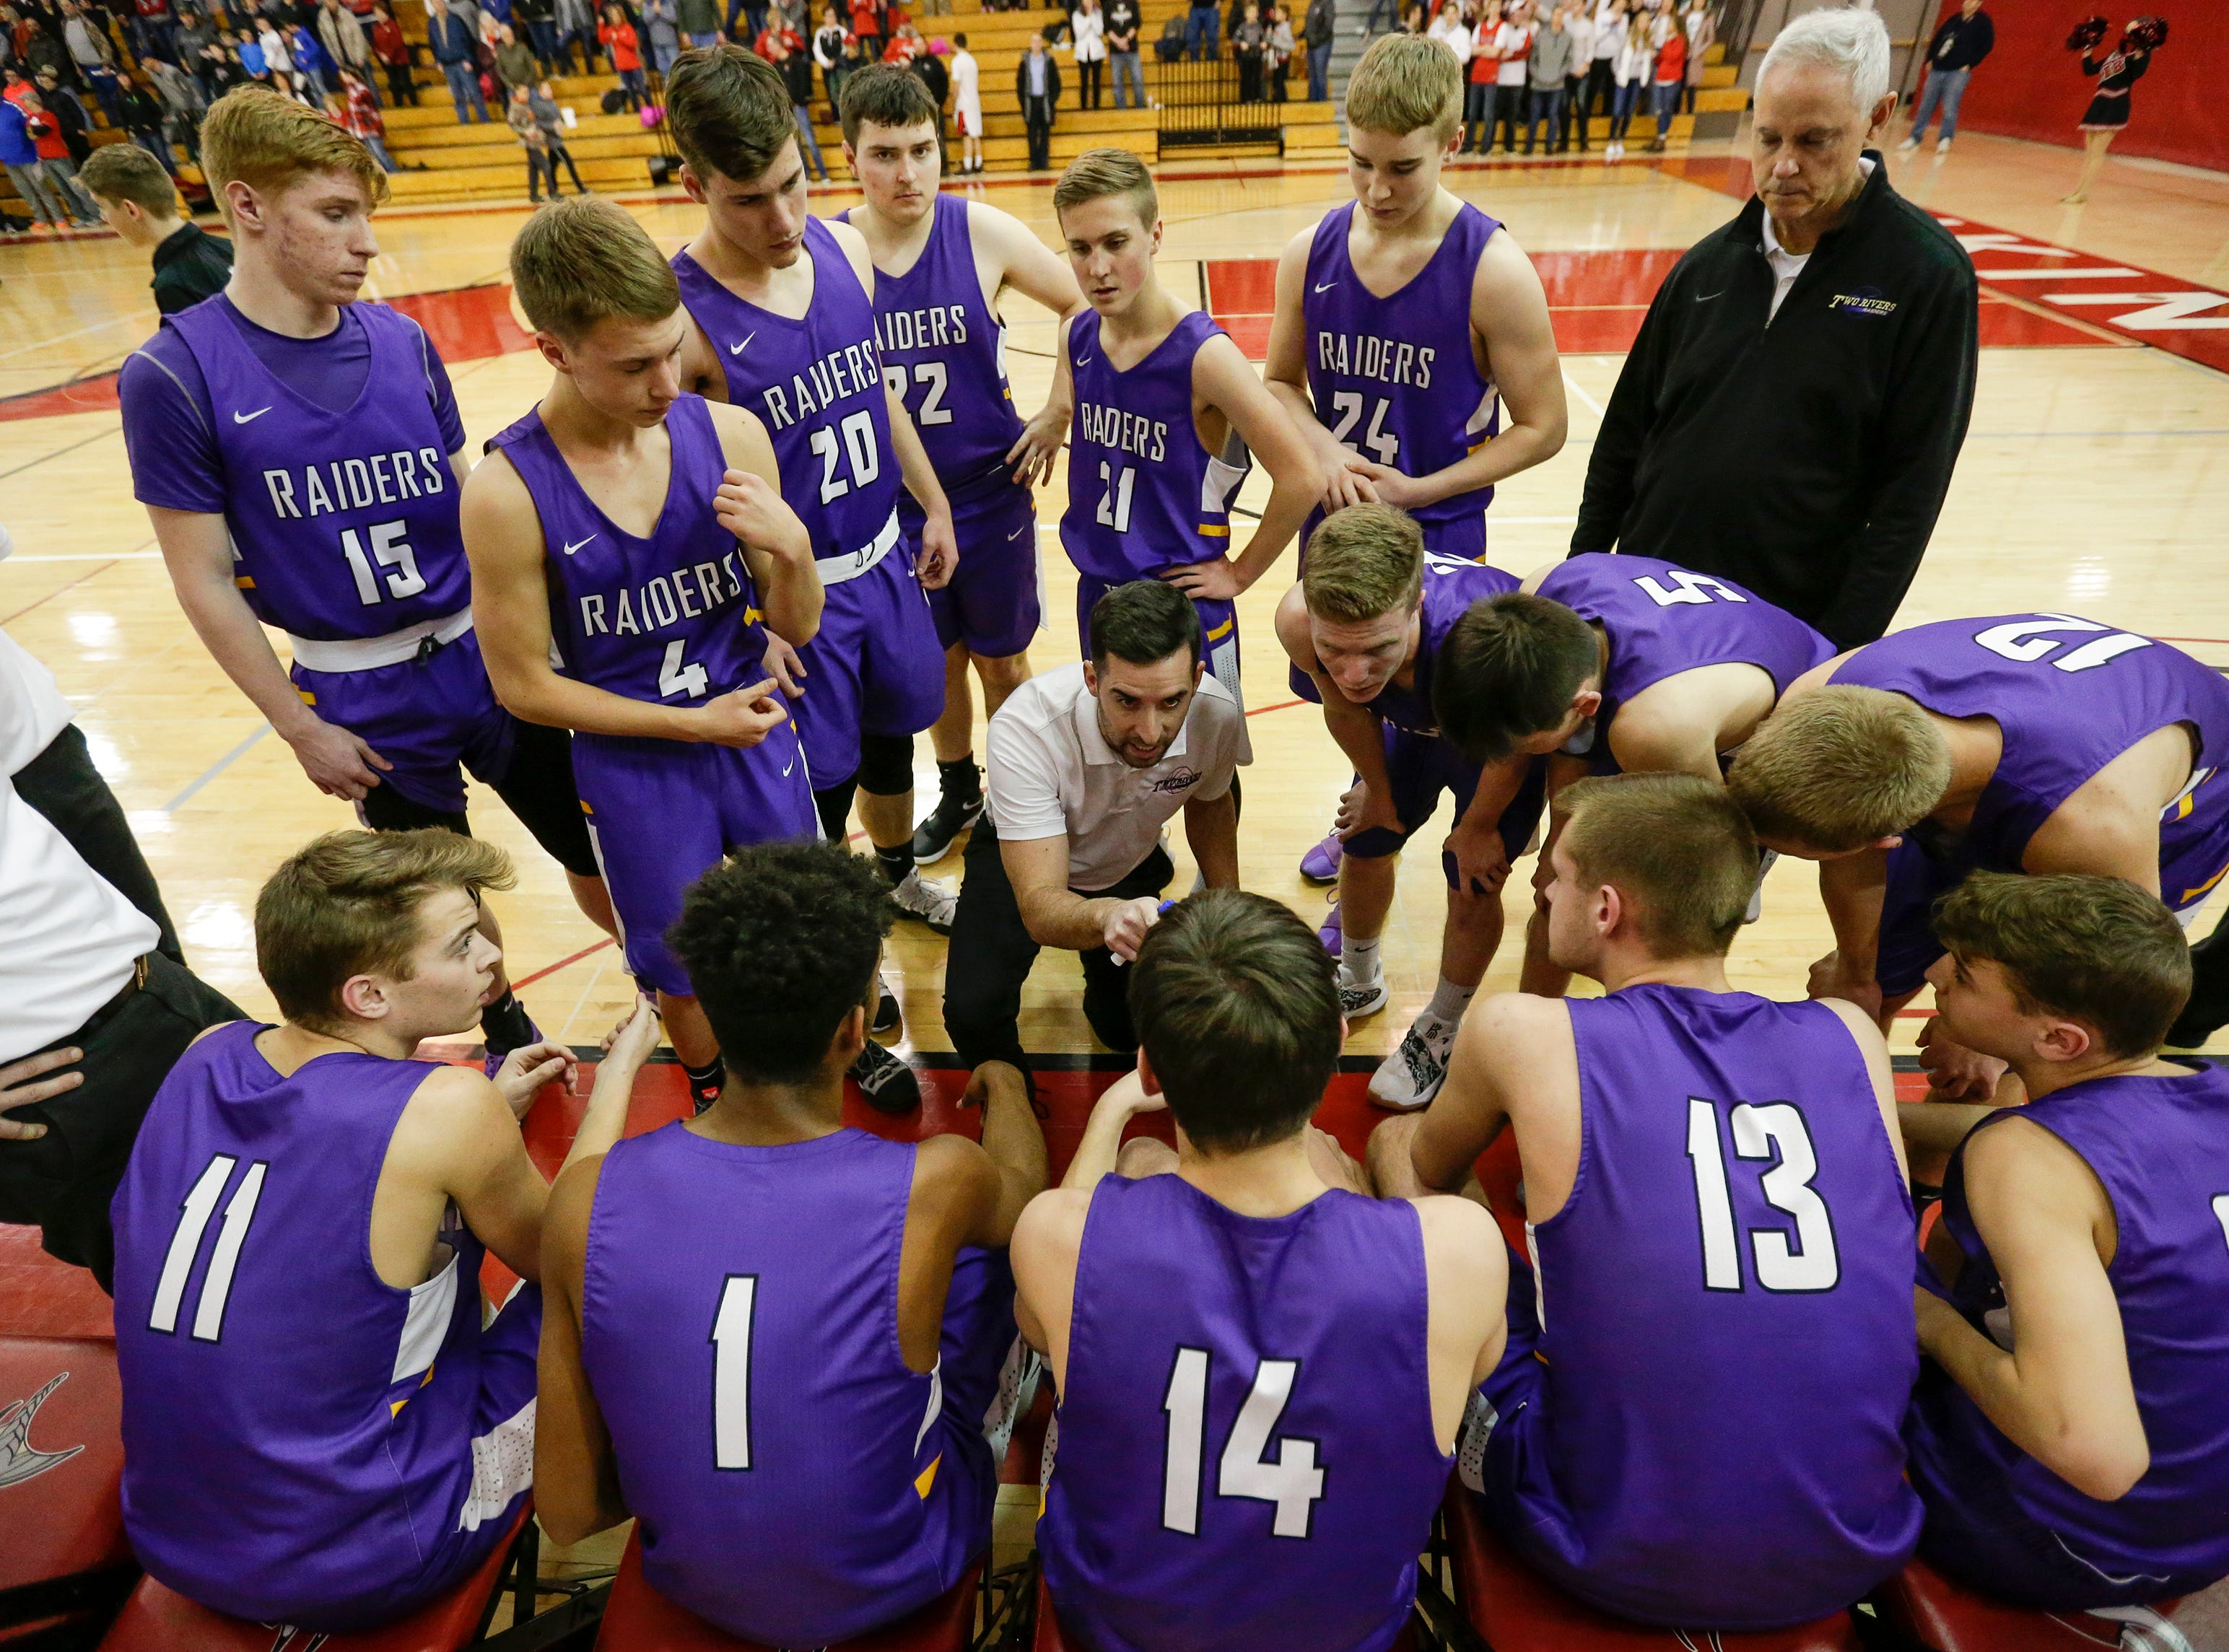 Two Rivers' coach Nick Spencer talks to his team before their game against Valders at Valders High School Thursday, January 24, 2019, in Valders, Wis. Joshua Clark/USA TODAY NETWORK-Wisconsin